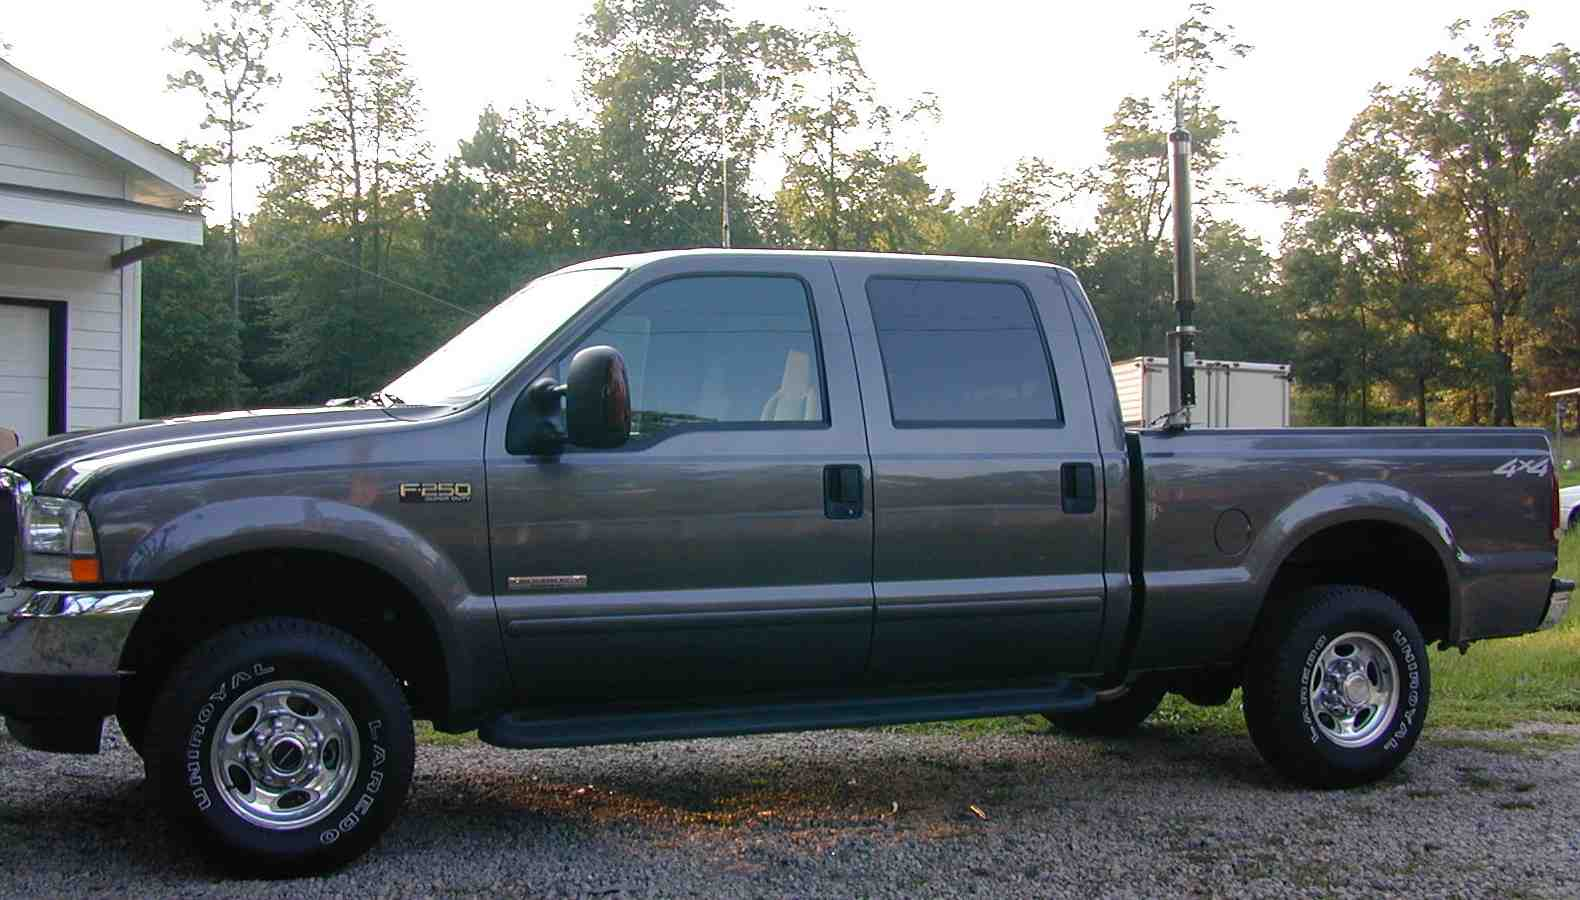 Hf rf noise mobile powerstroke diesel ford